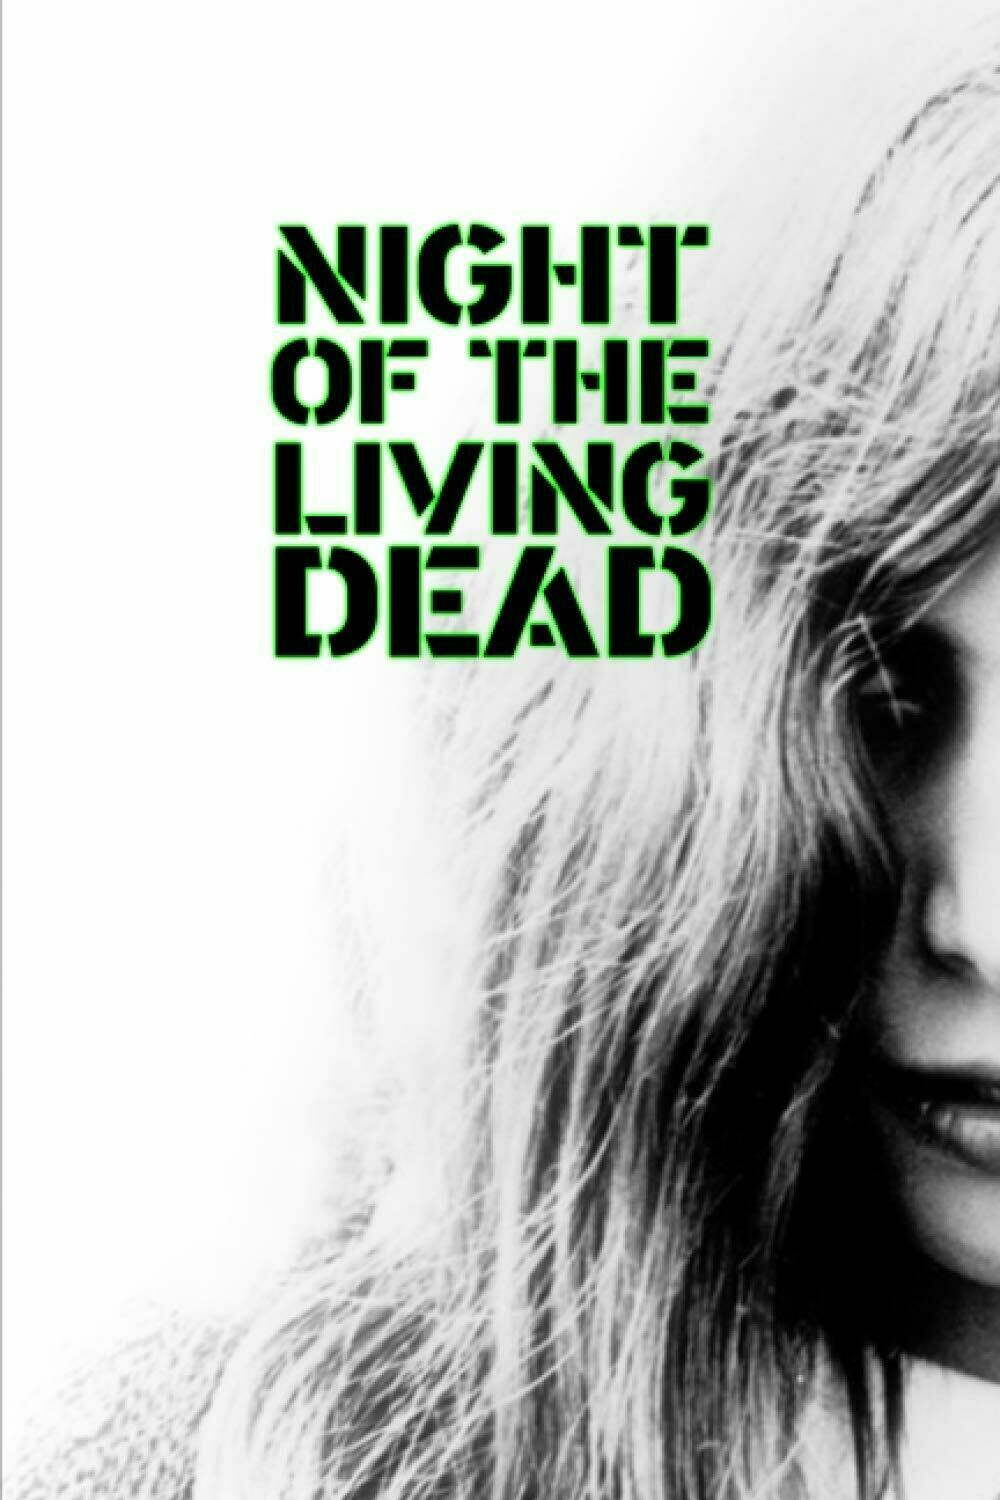 Night of the Living Dead (George Romero) Luxury Lined Notebook - Journal Diary Writing Paper Note Pad Horror Movie Prop Replica